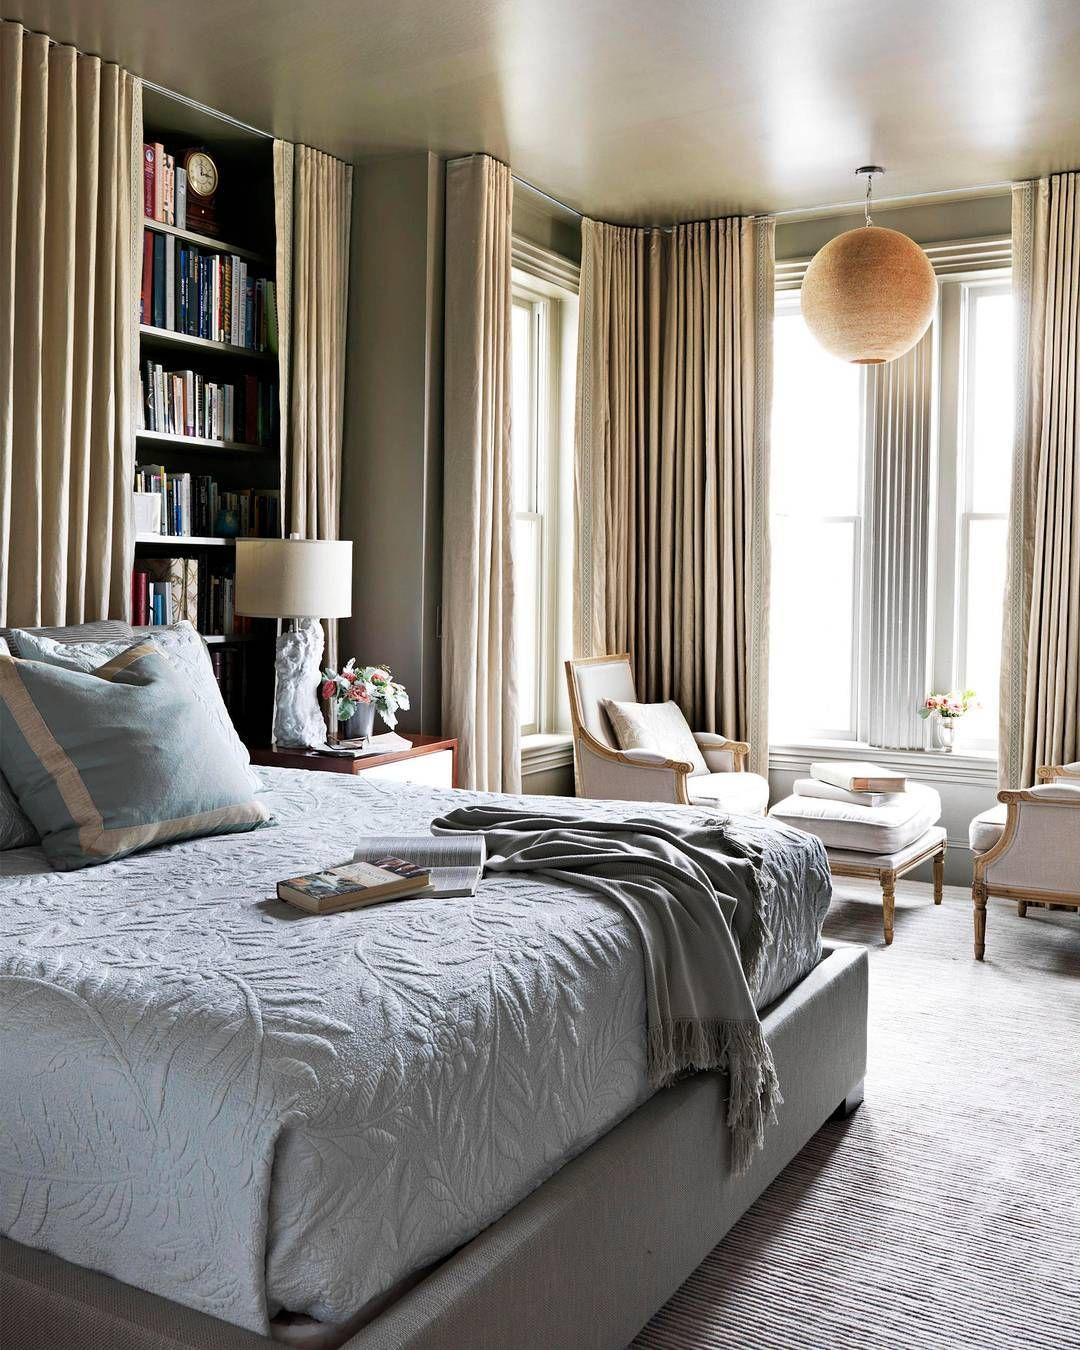 Bed against the window  k likes  comments  house beautiful housebeautiful on